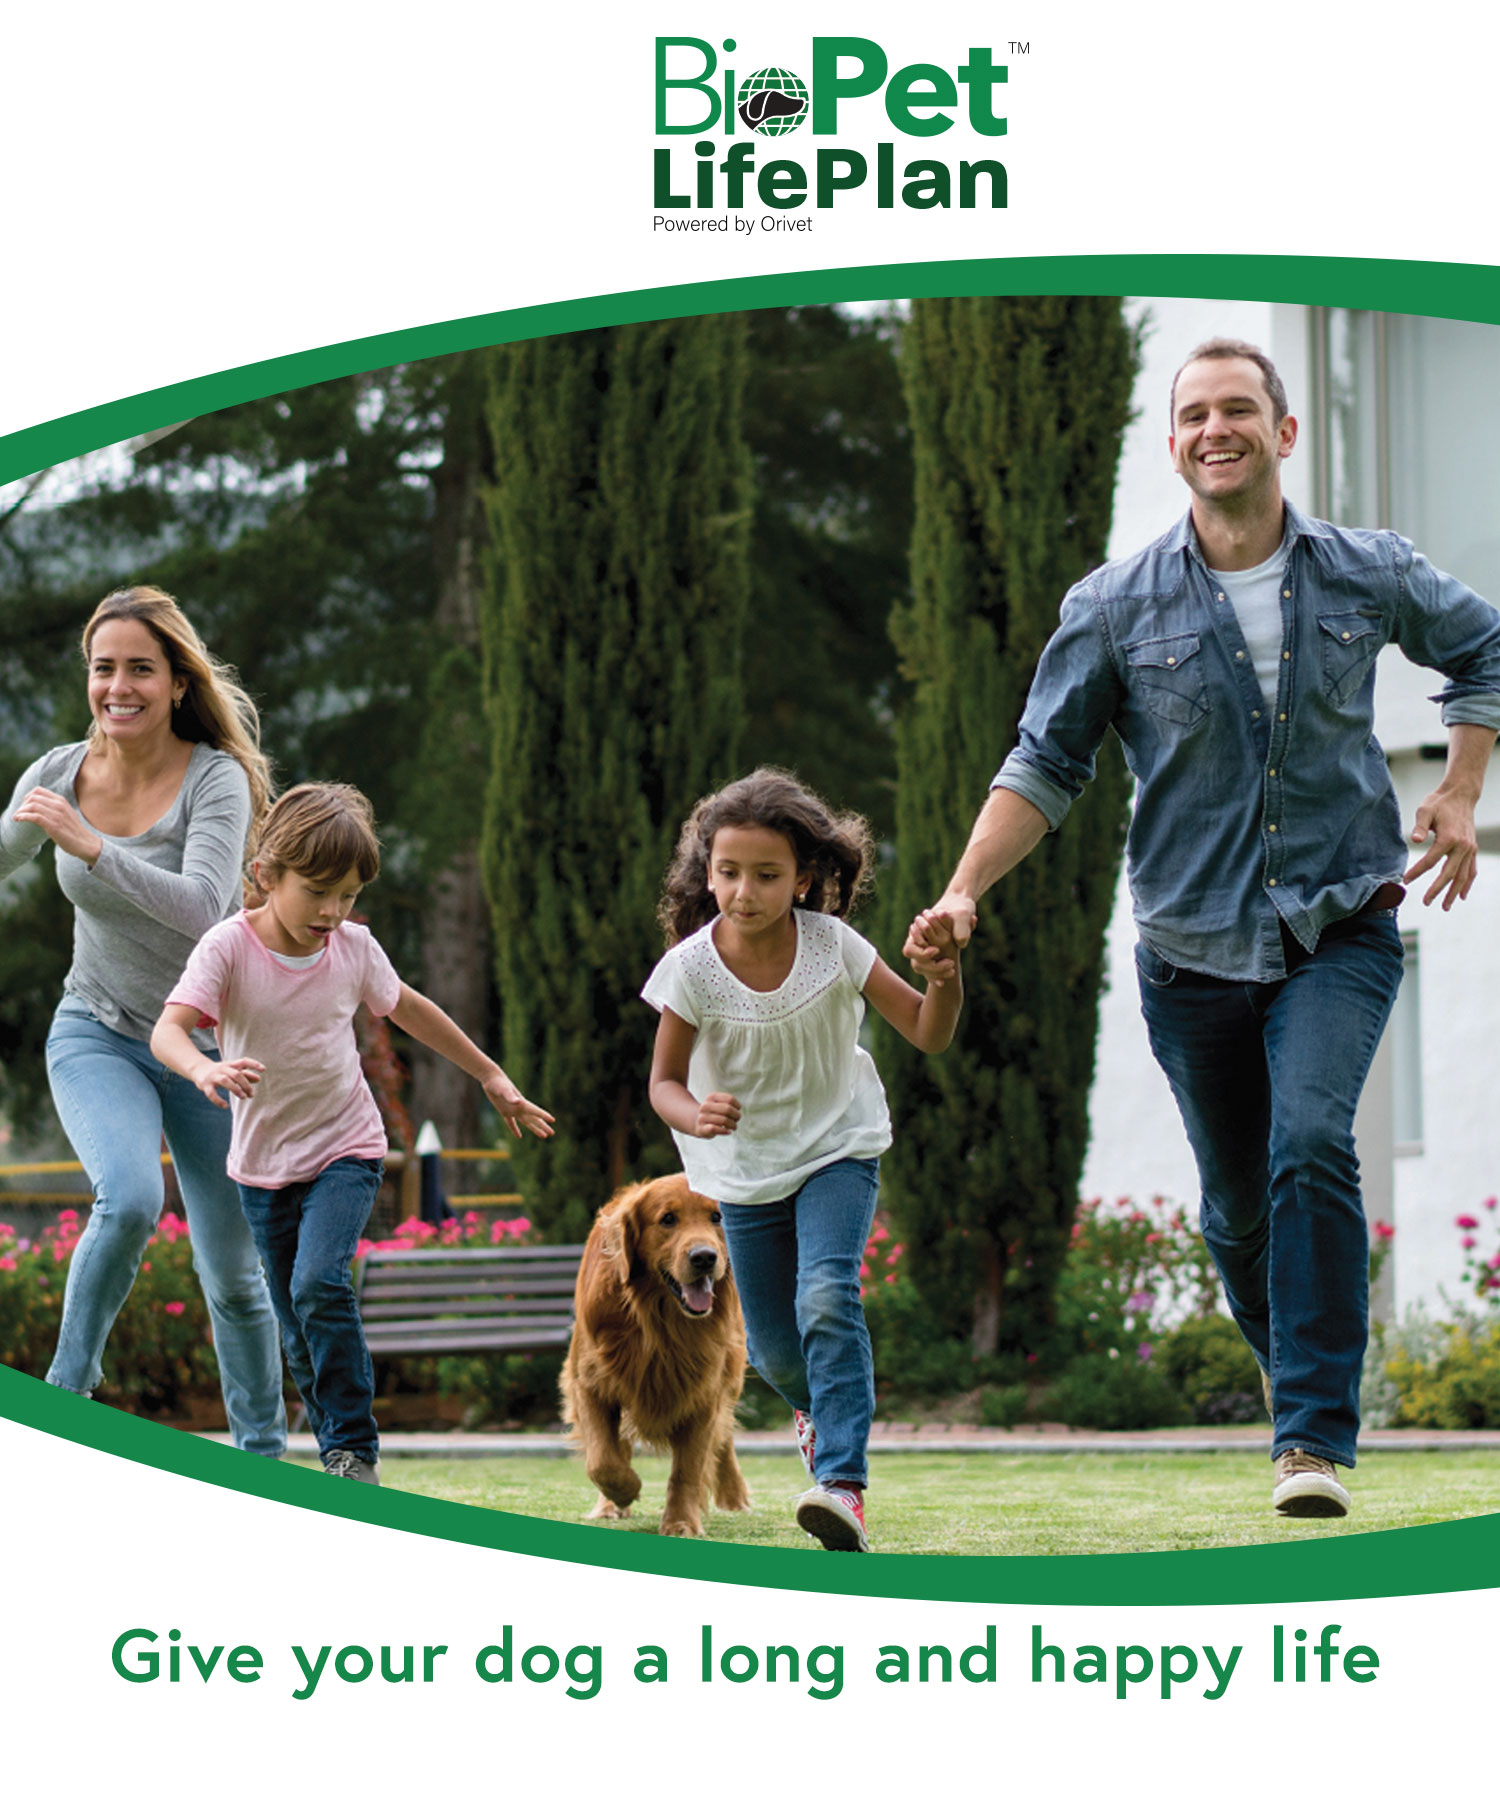 BIOPET LABORATORIES ANNOUNCES BIOPET LIFE PLAN™ A HEALTH AND WELLNESS MANAGEMENT PROGRAM FOR CANINE PETS